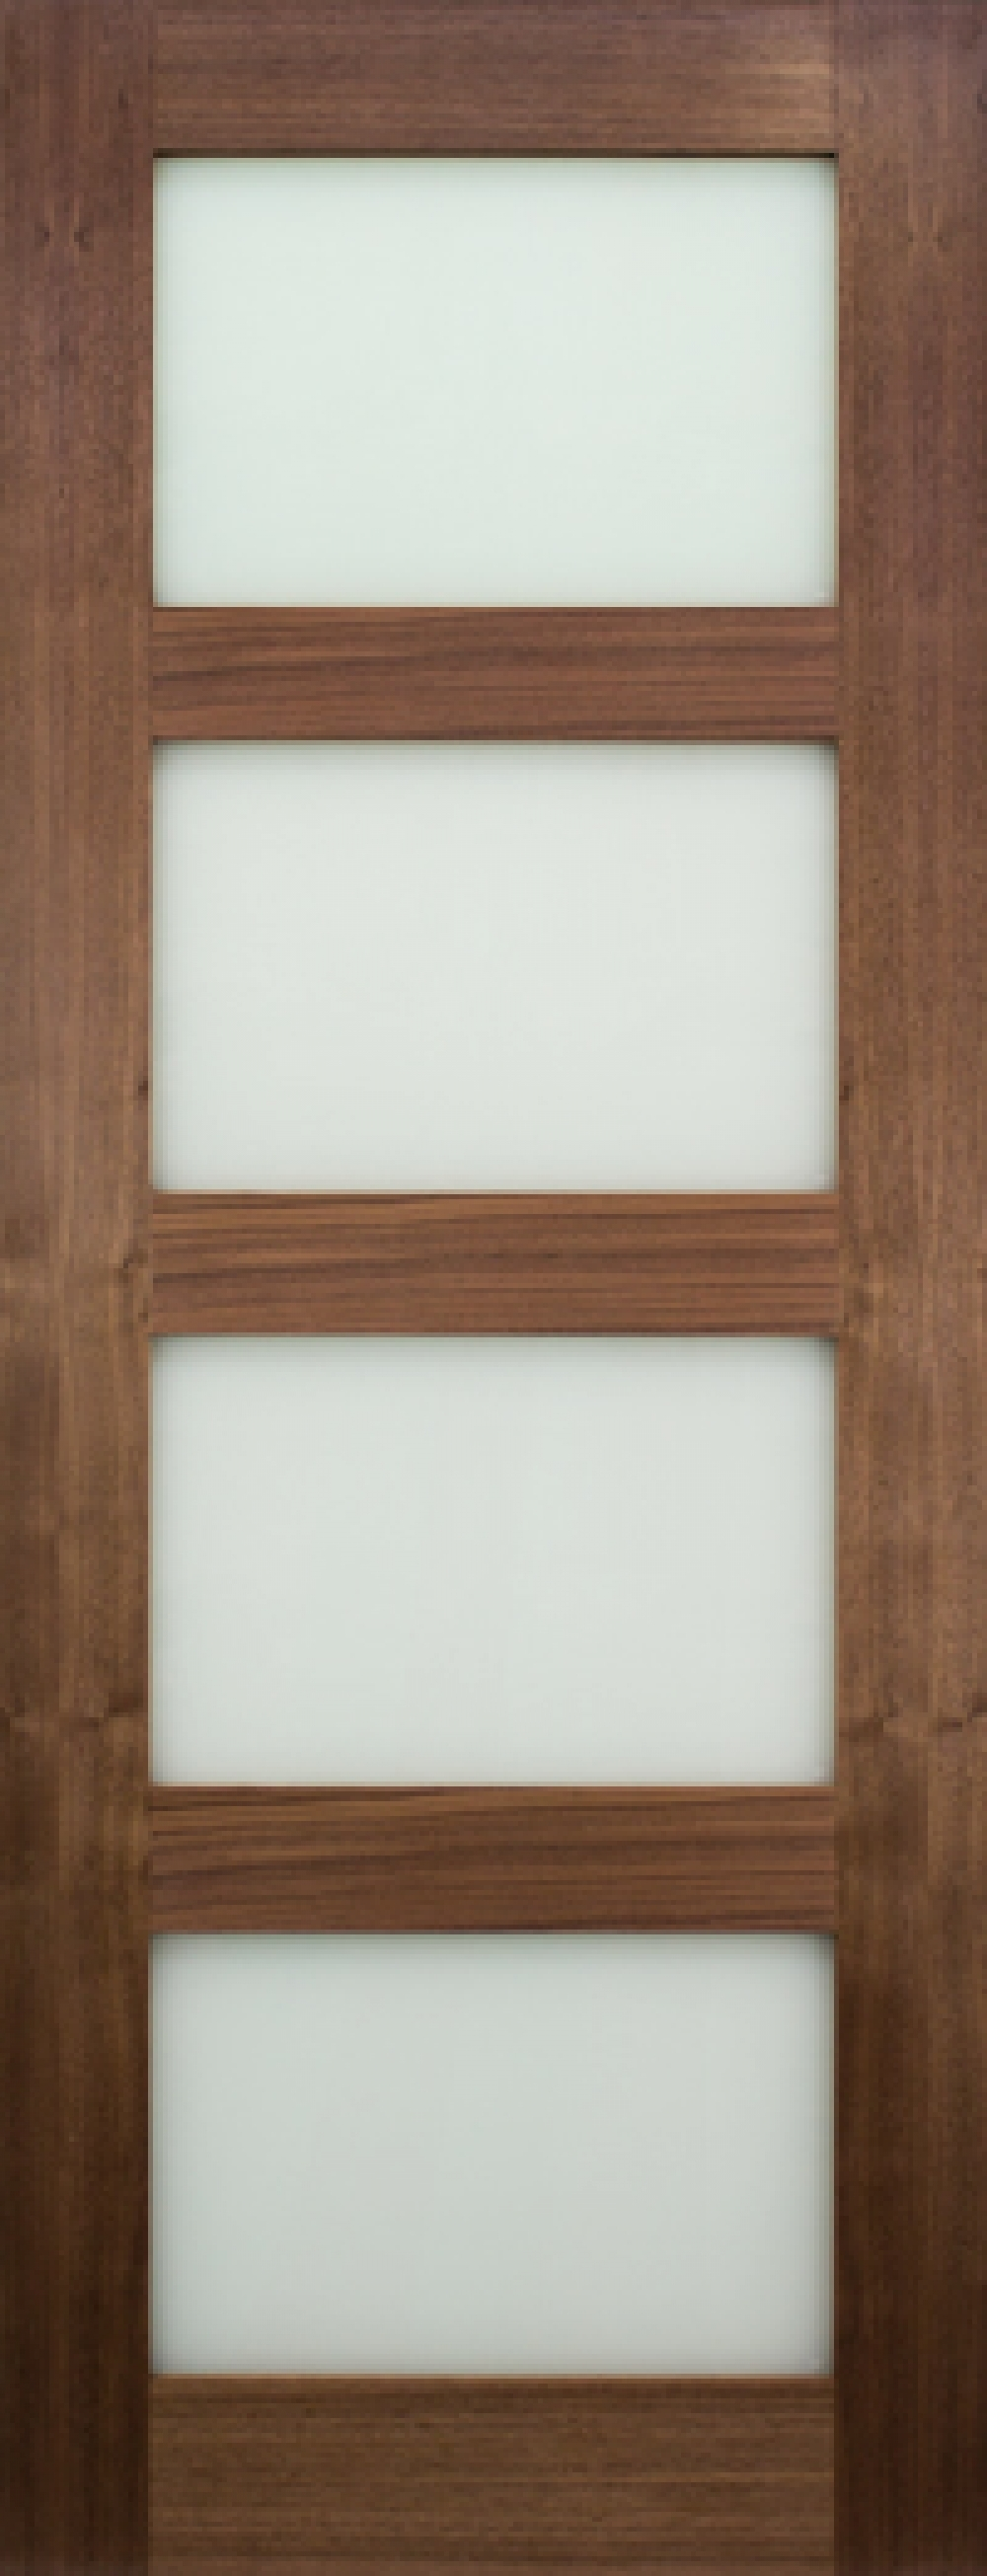 Coventry Walnut Glazed - Frosted Prefinished